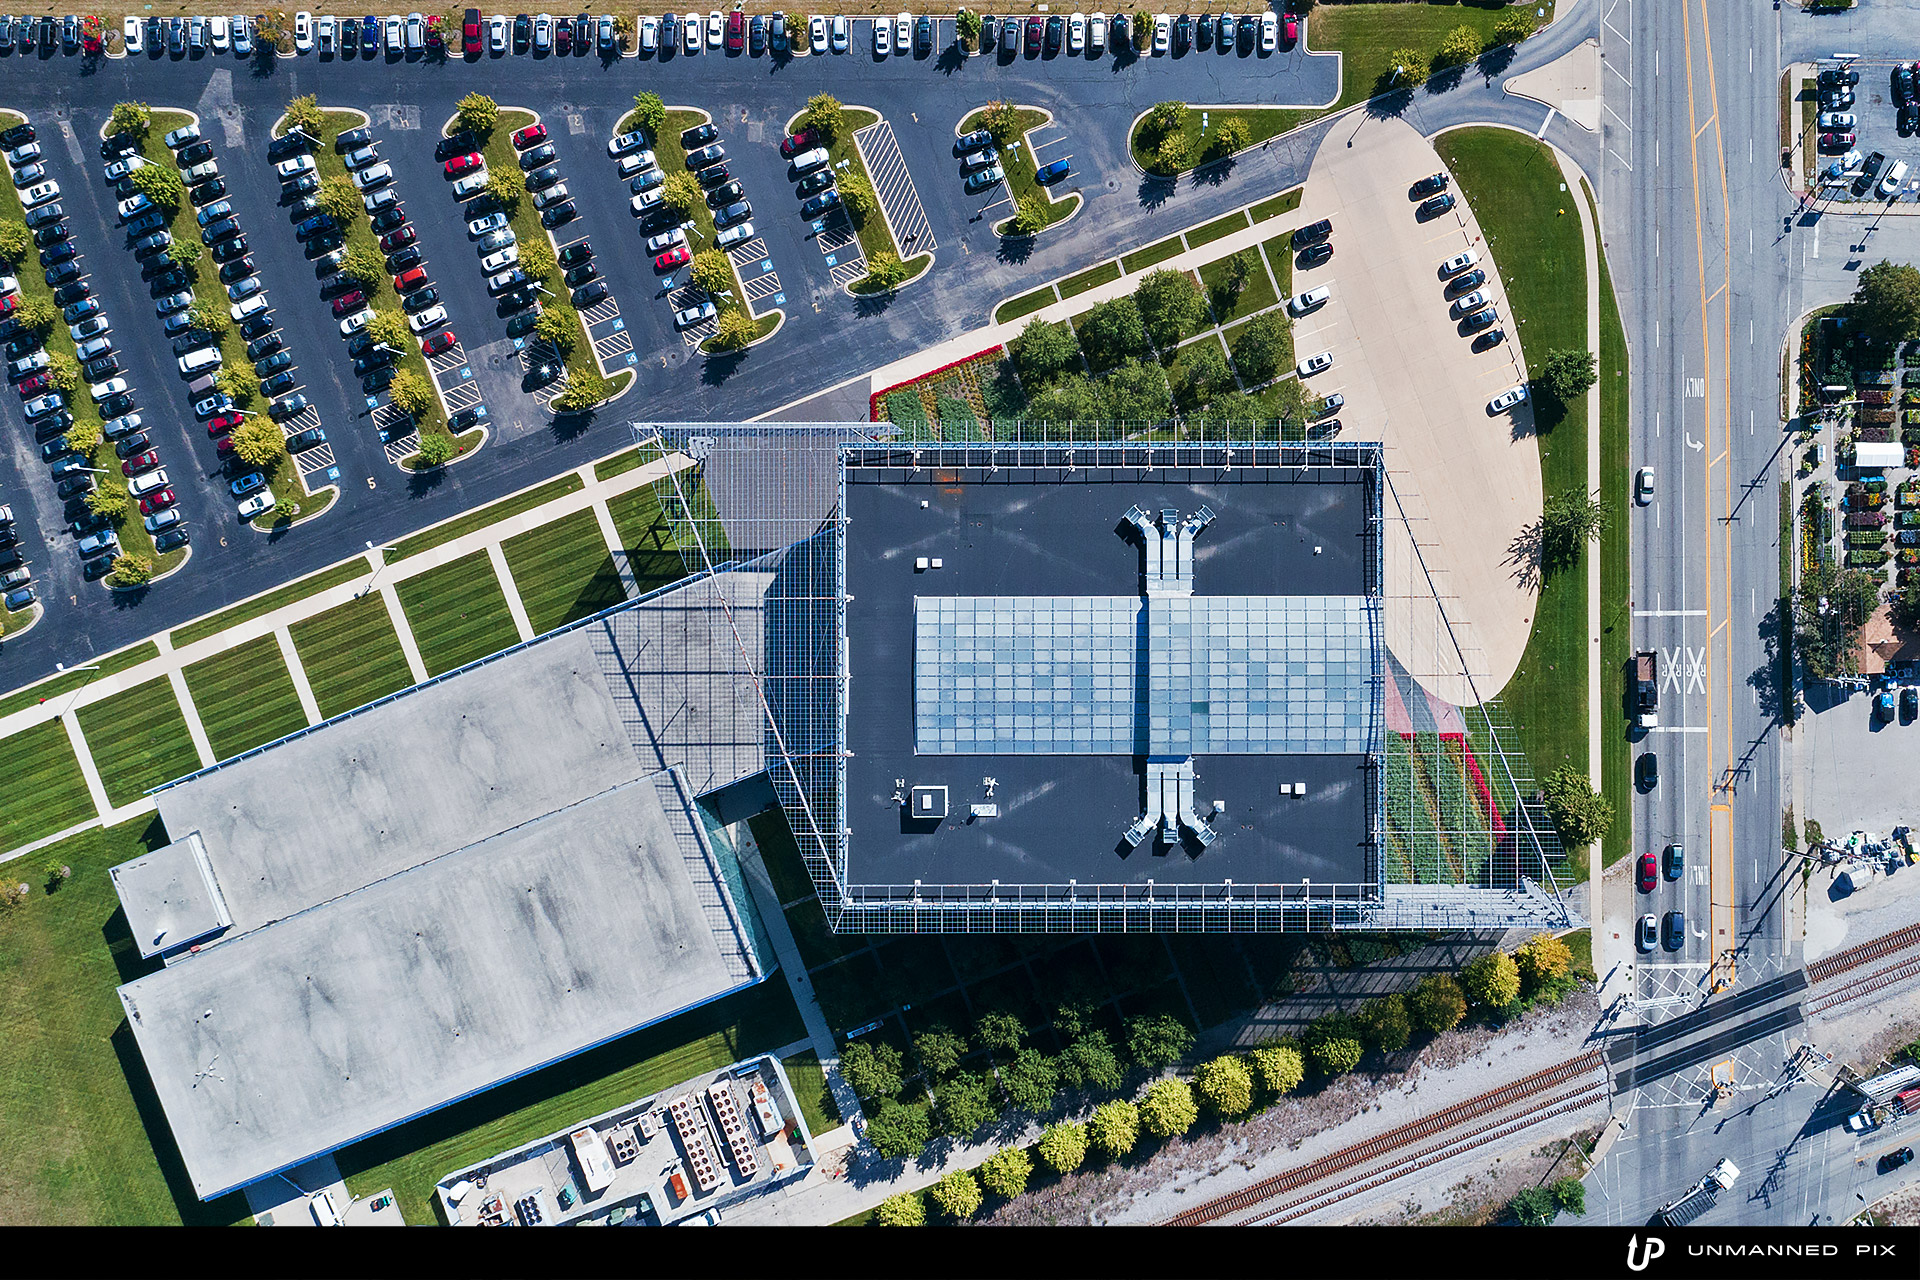 aerial top down view of Shure building, photographed by jacob rosenfeld with unmannedpix.com